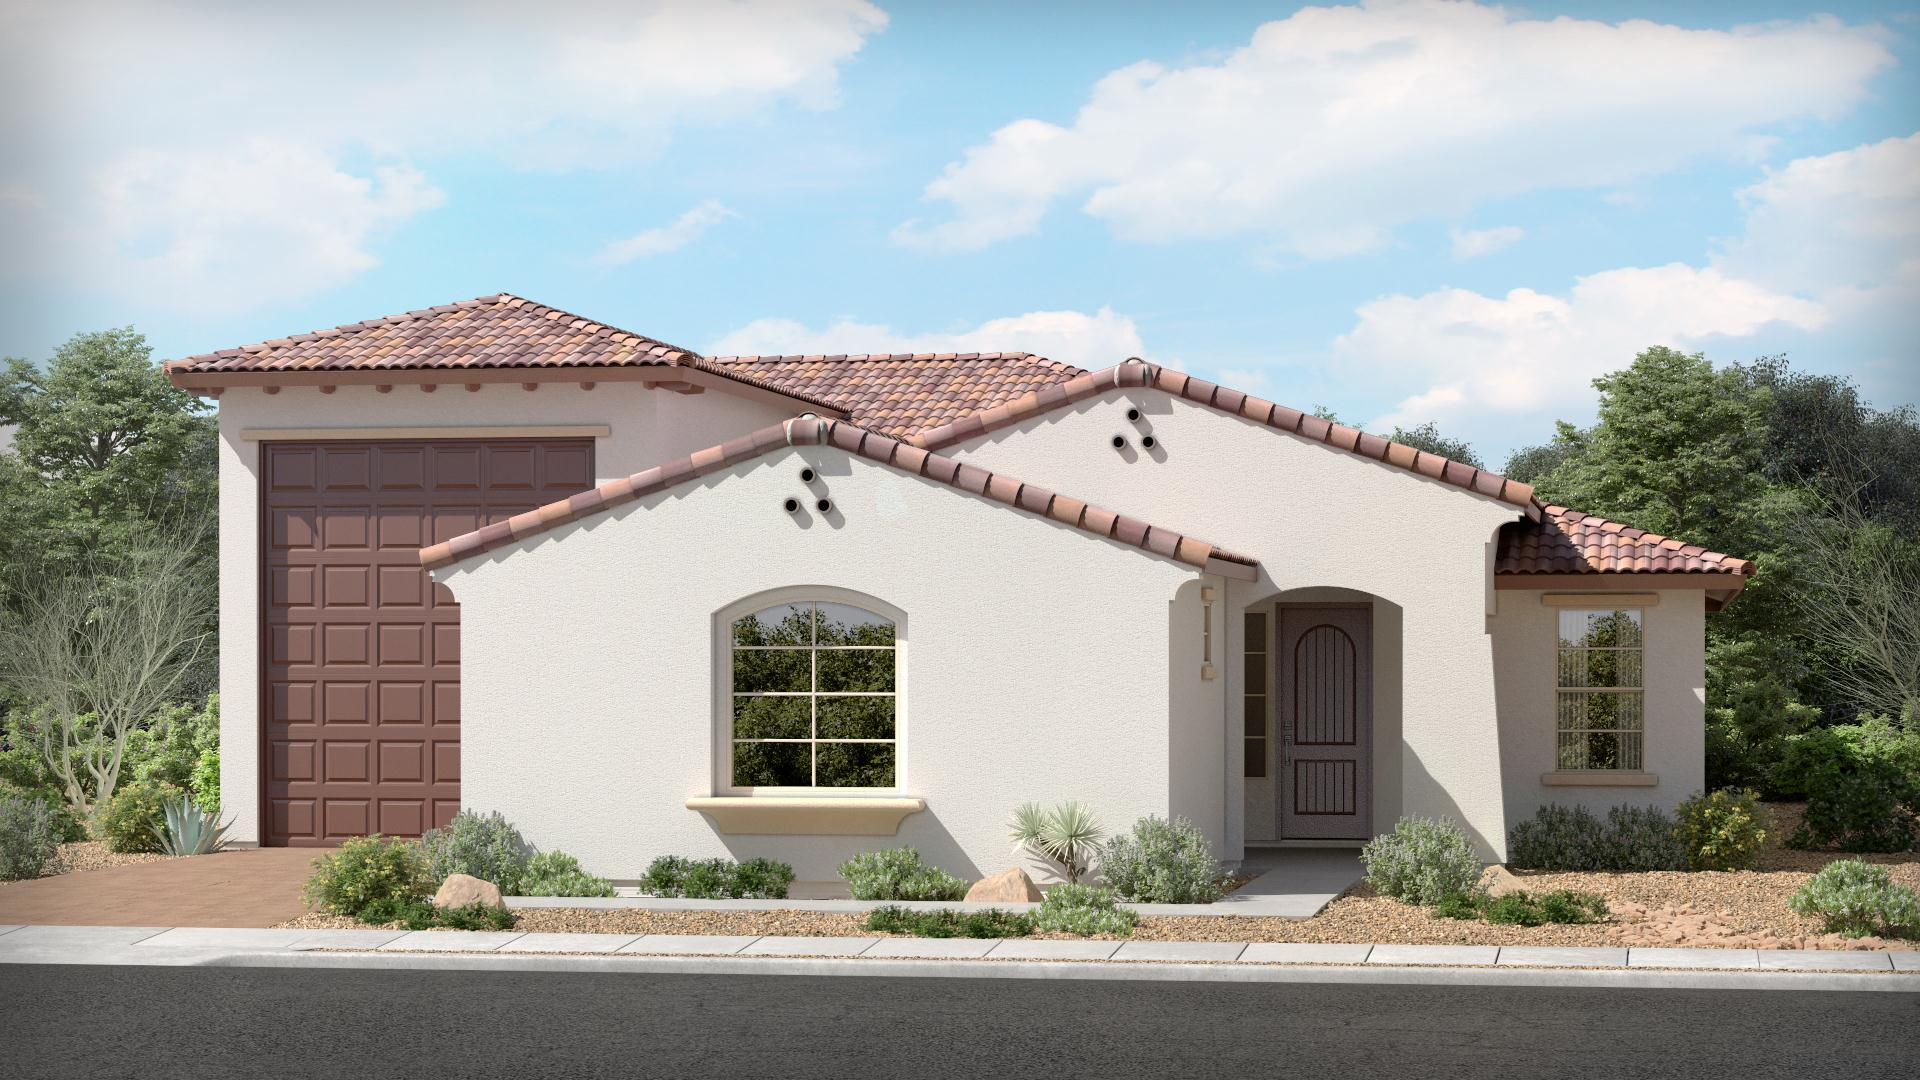 Exterior featured in The Ruby | Plan 50.2090RV By Brown Homes AZ in Prescott, AZ